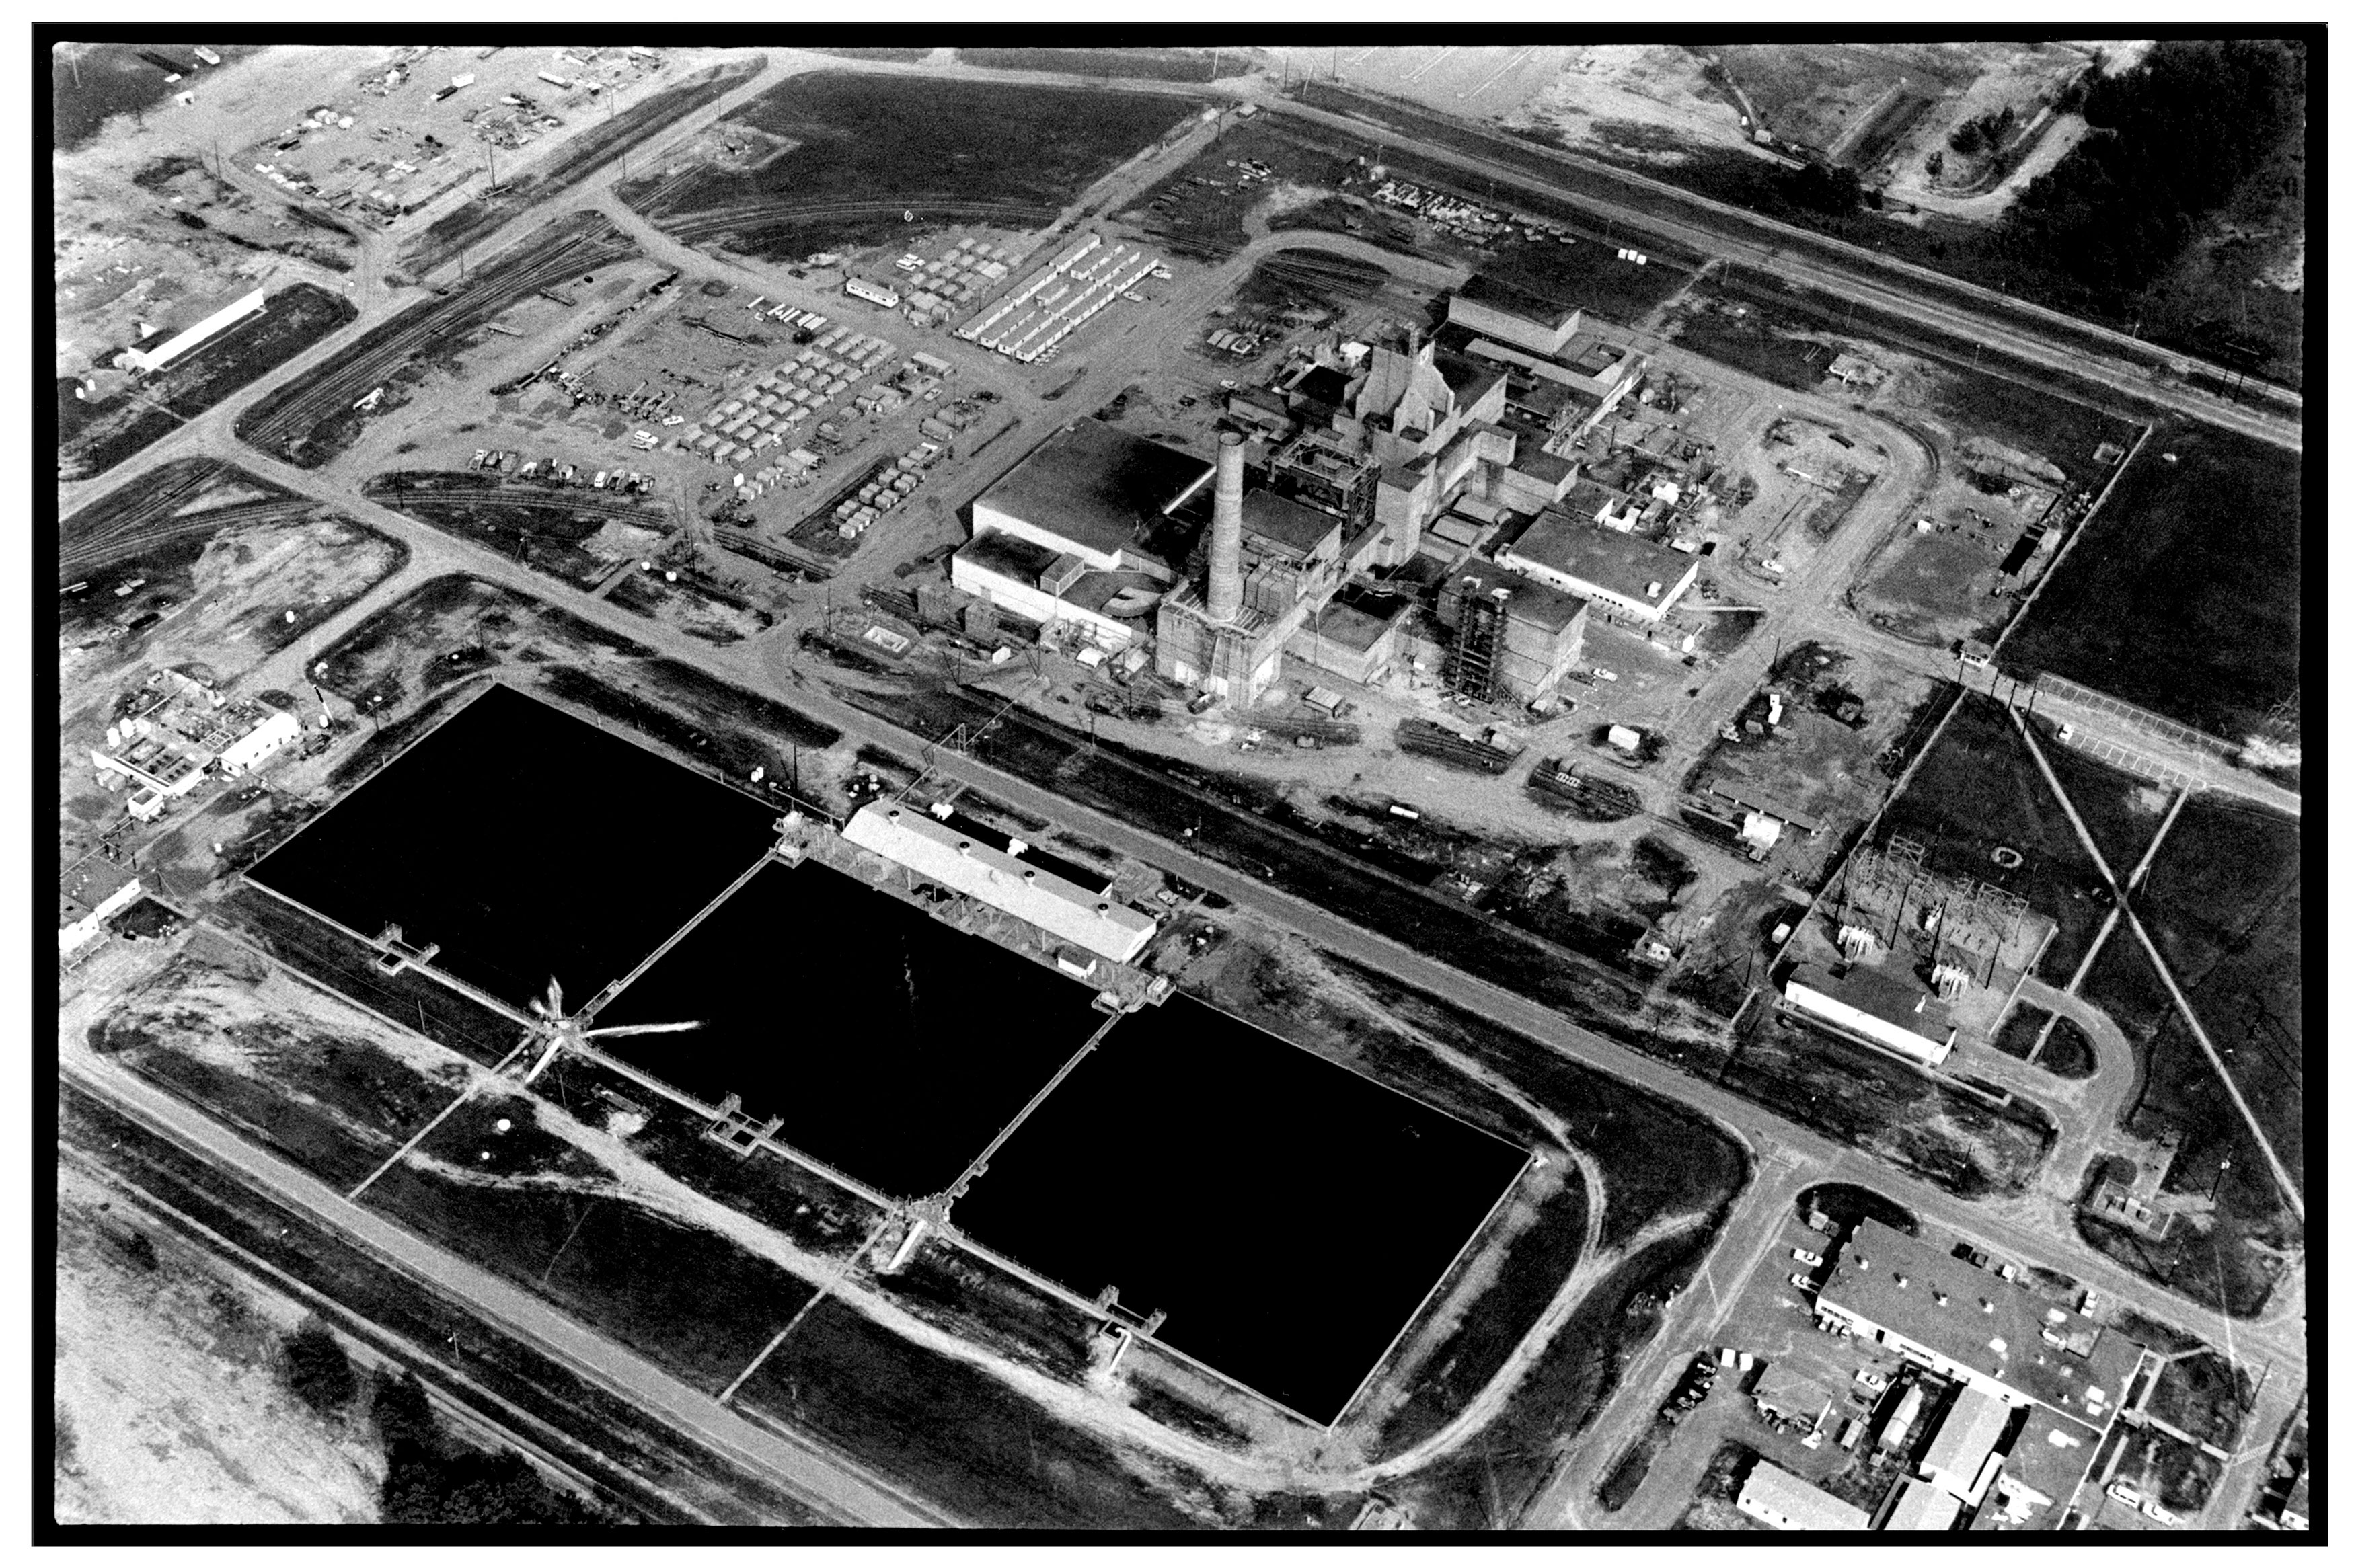 L Plutonium Production Reactor, Savannah River Site